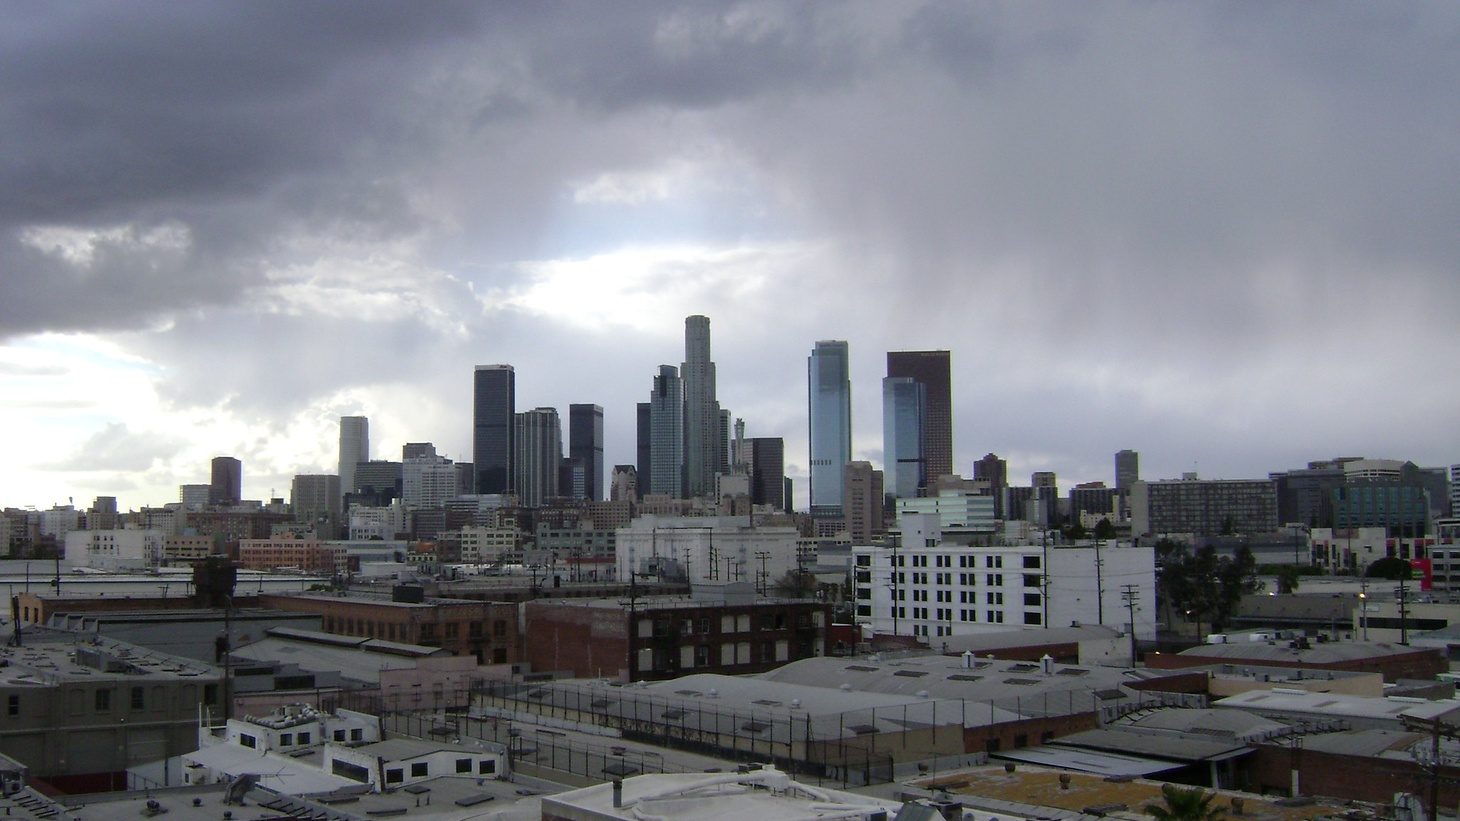 Los Angeles skyline in the rain.